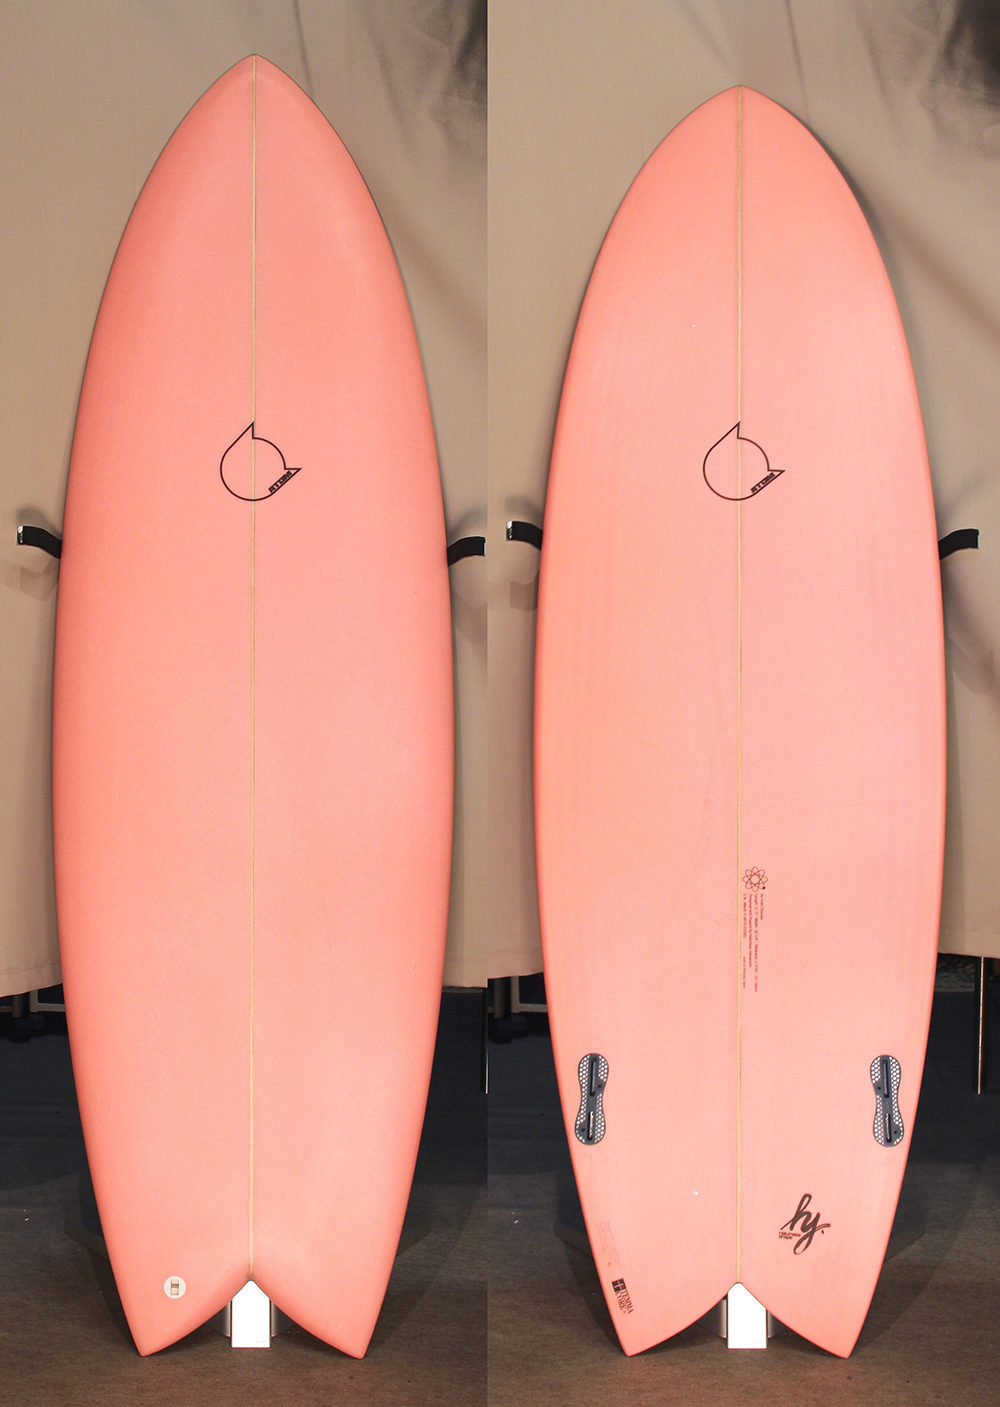 ATOM Surfboard Mach-Ⅱ model